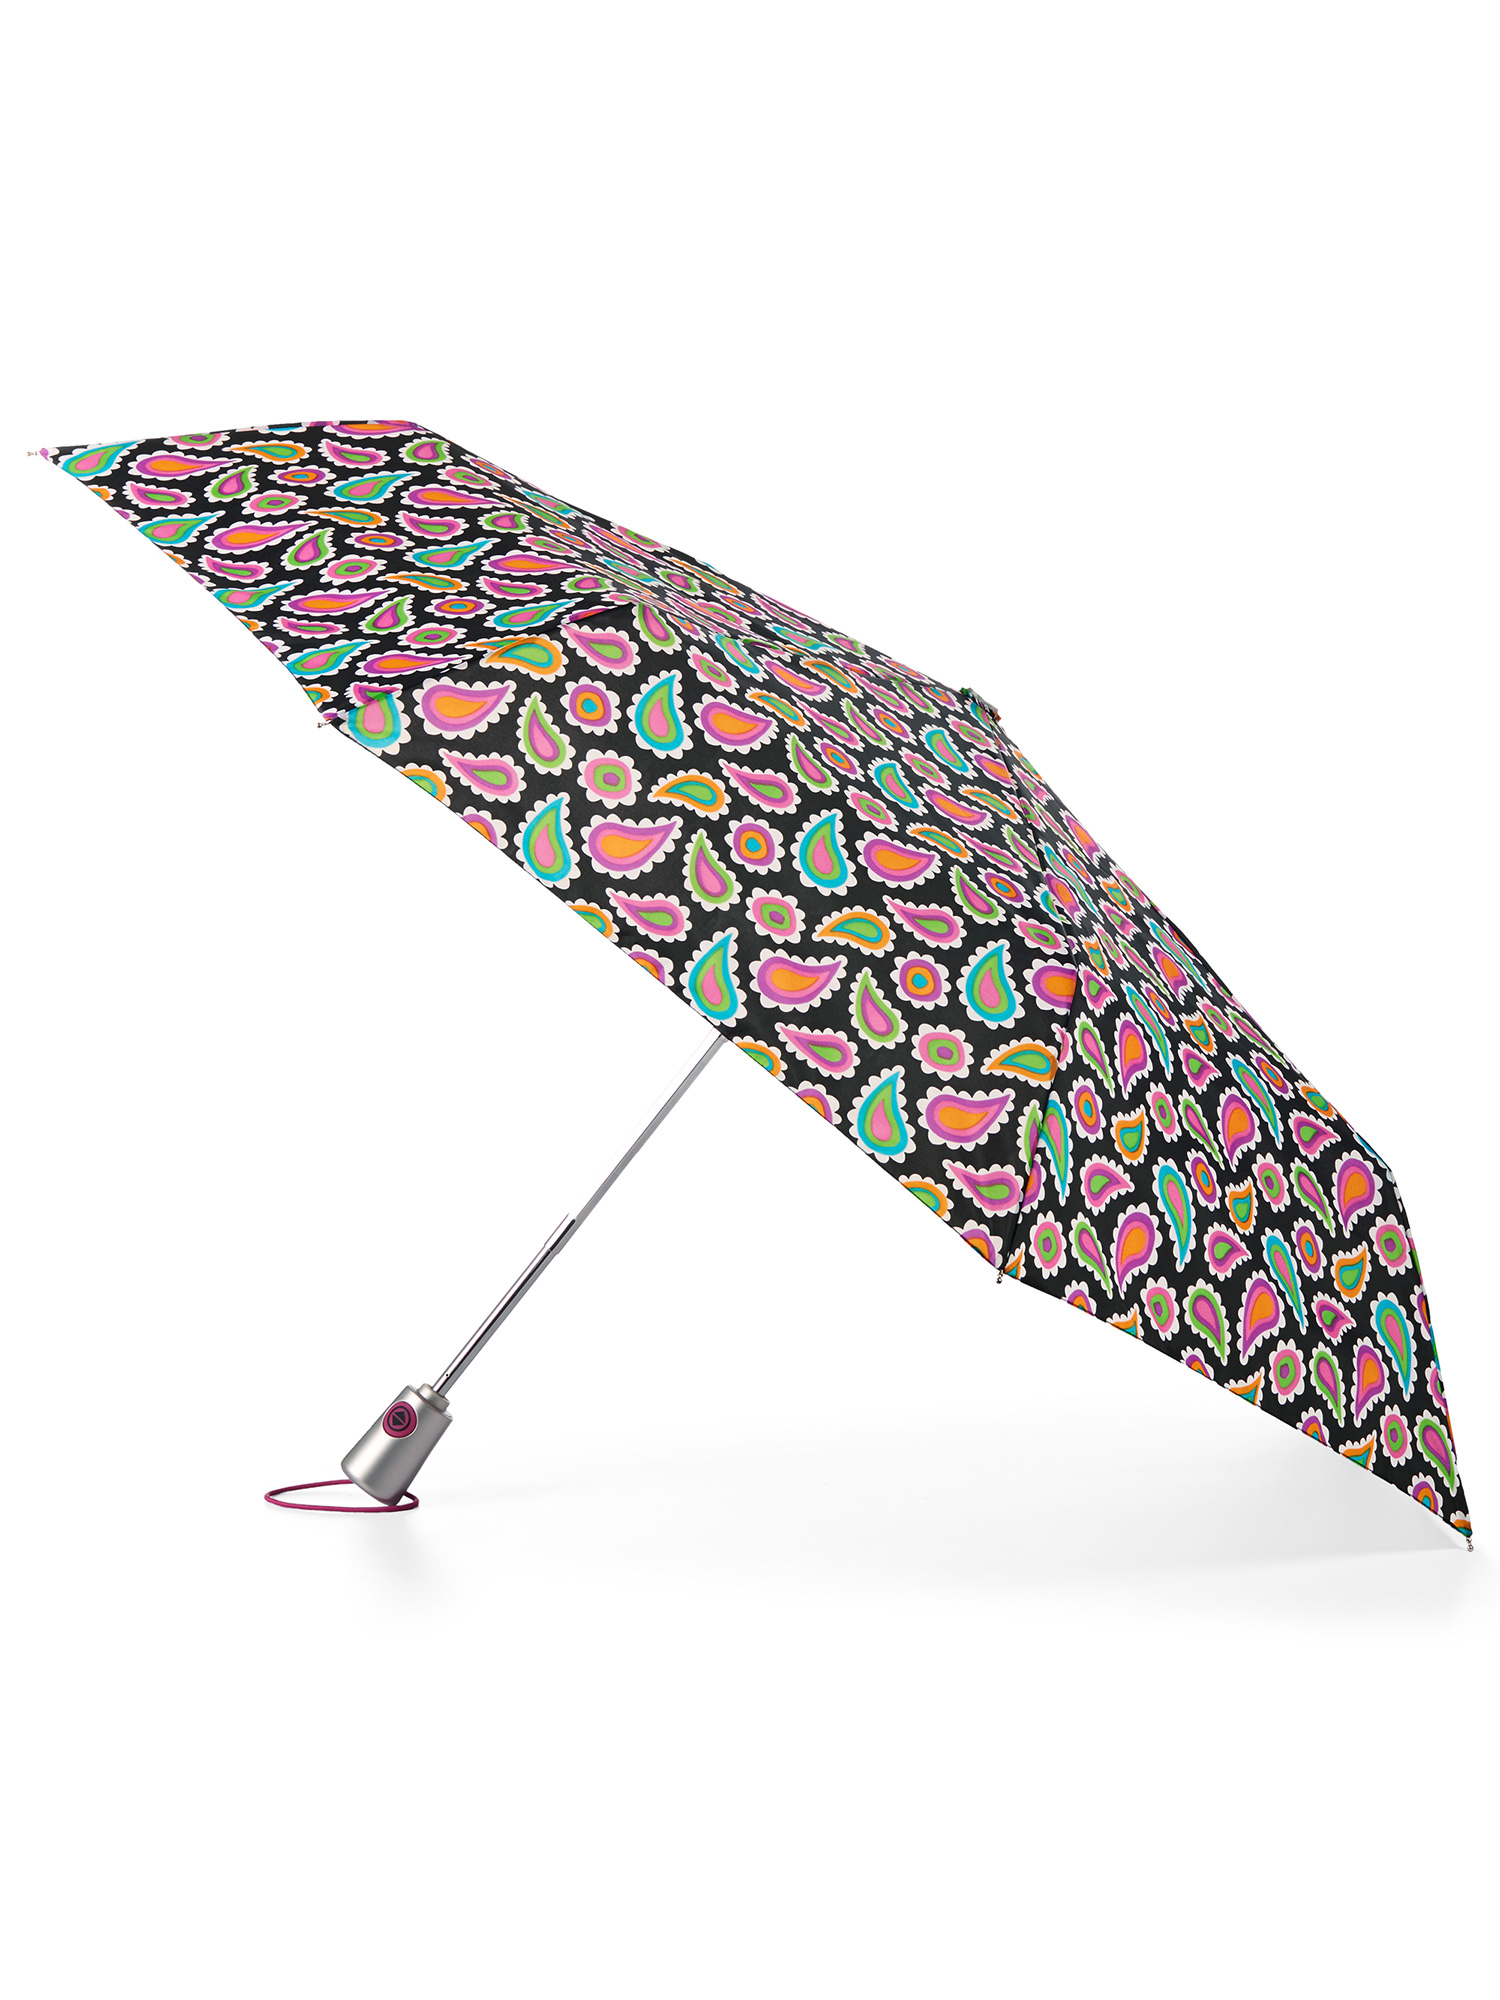 Totes NeverWet Auto Open-Close Umbrella, 43""